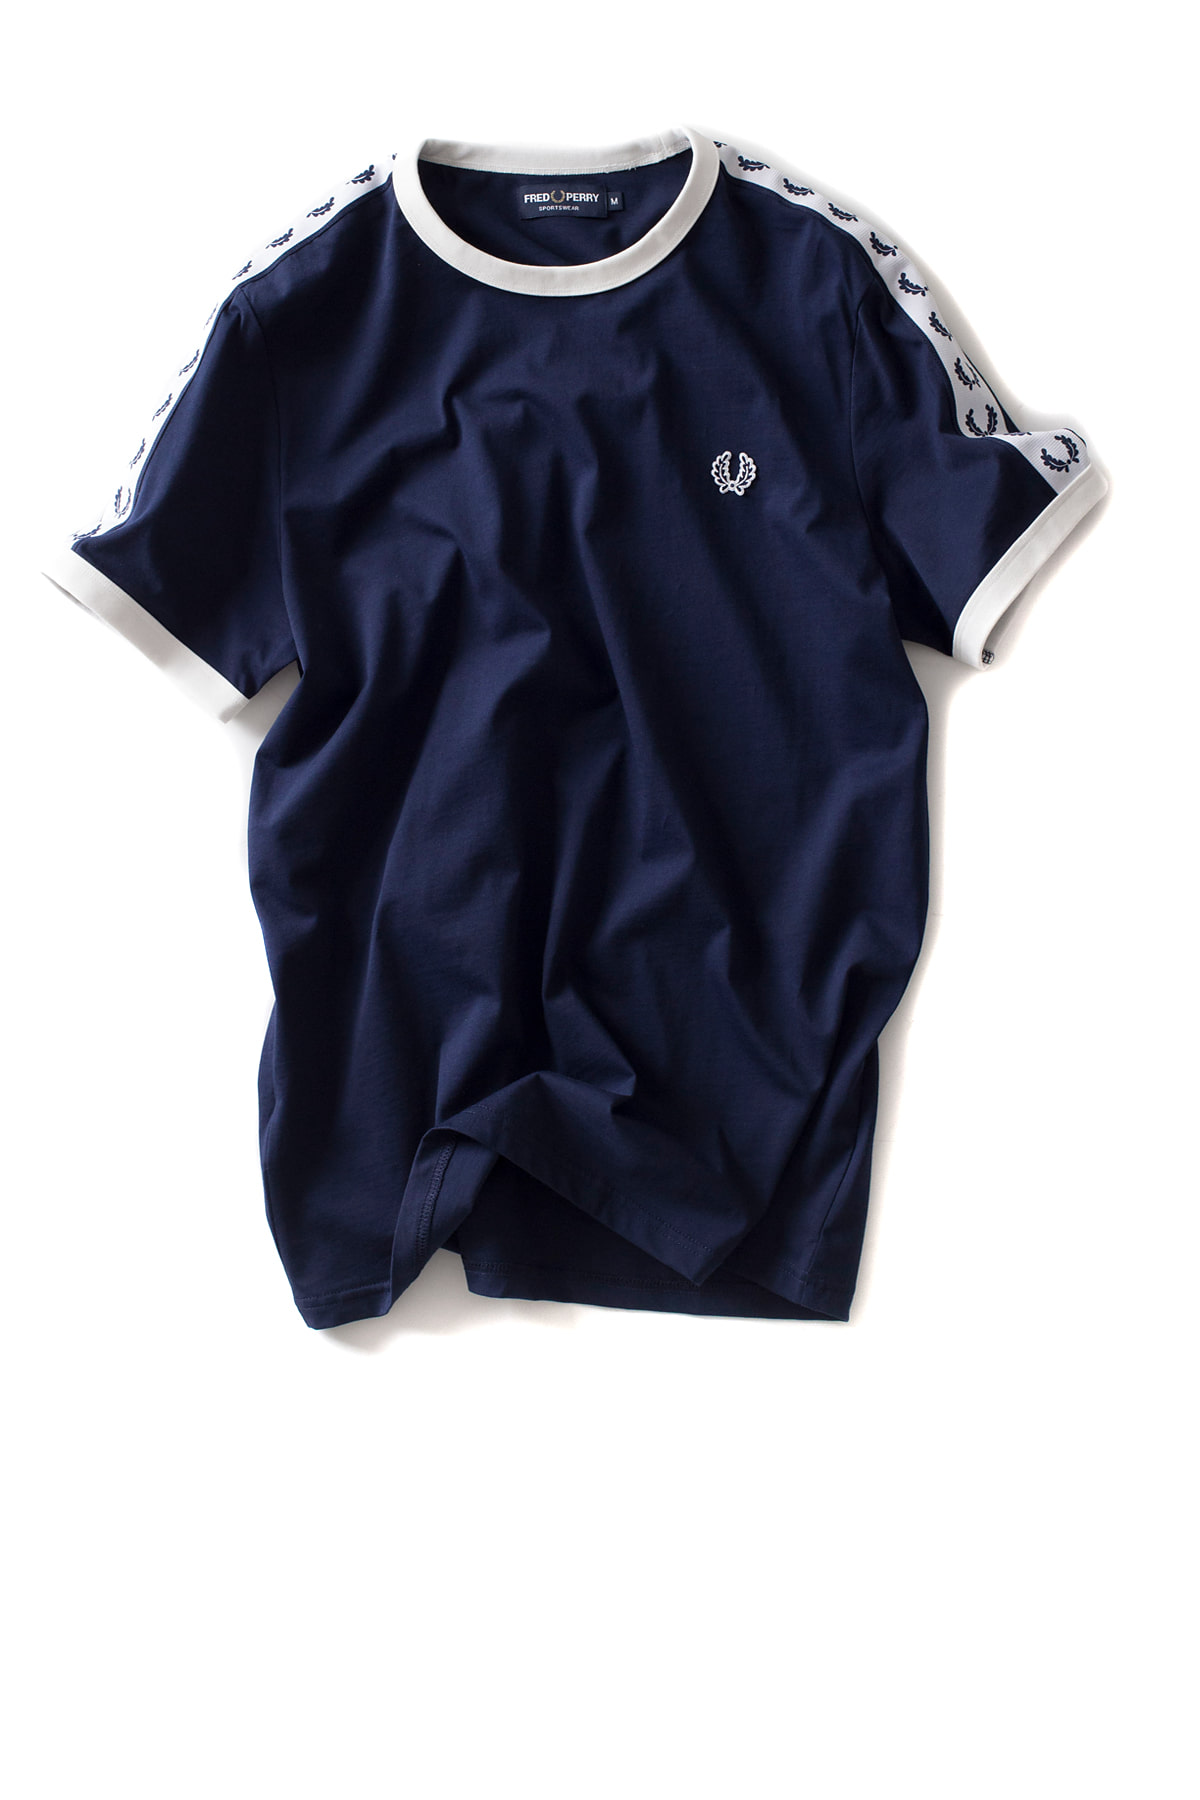 FRED PERRY : Taped Ringer T-Shirt (Carbon Blue)